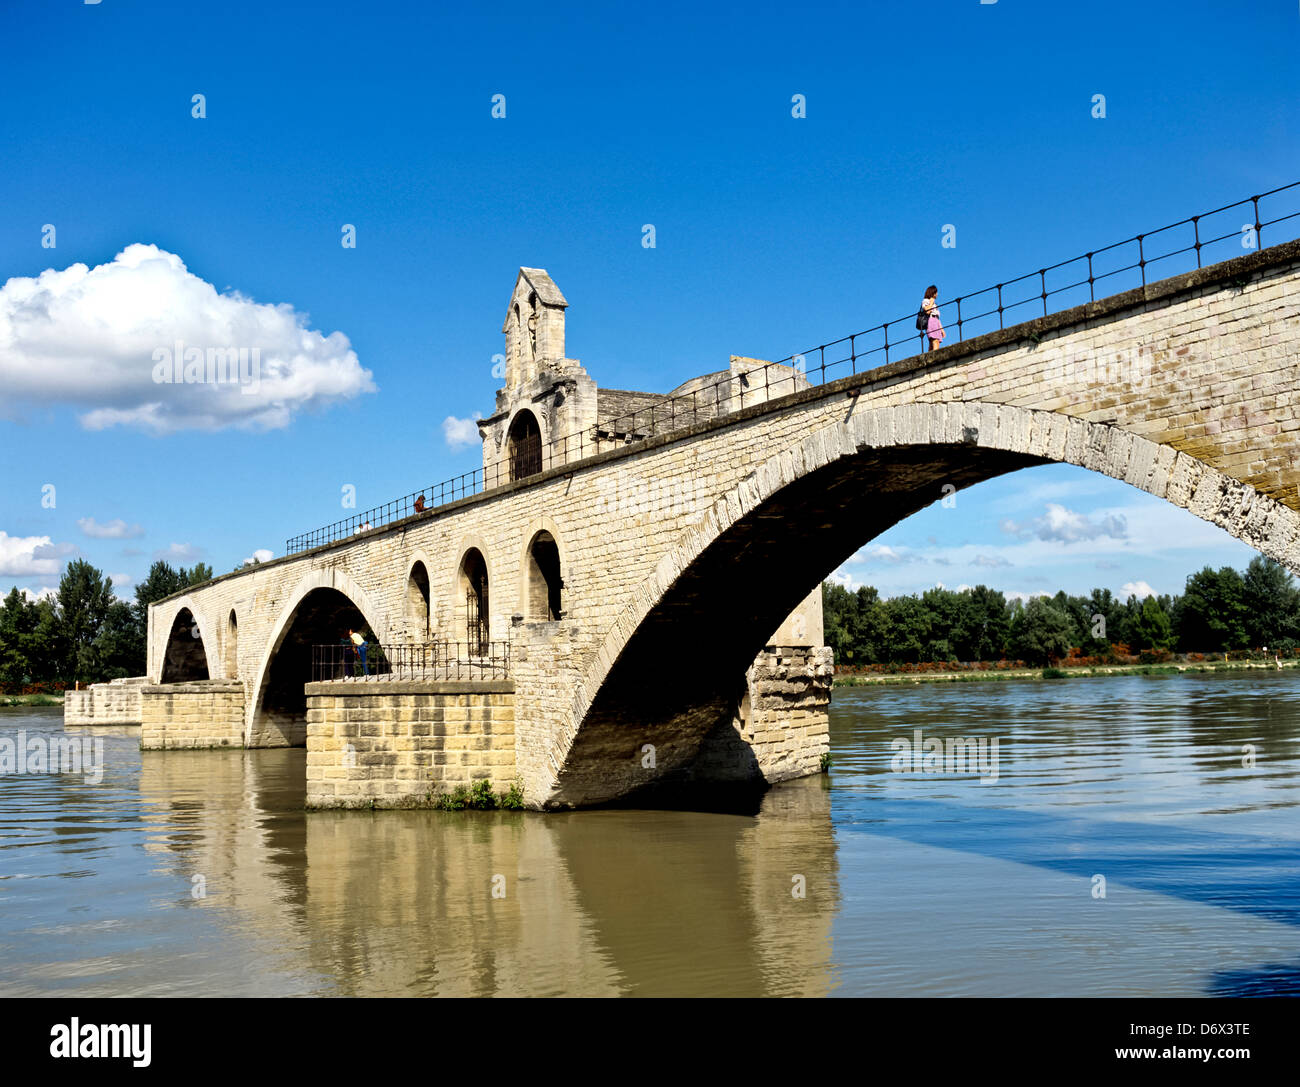 8524. Benezet Bridge & R. Rhone, Avignon, Provence, France, Europe - Stock Image